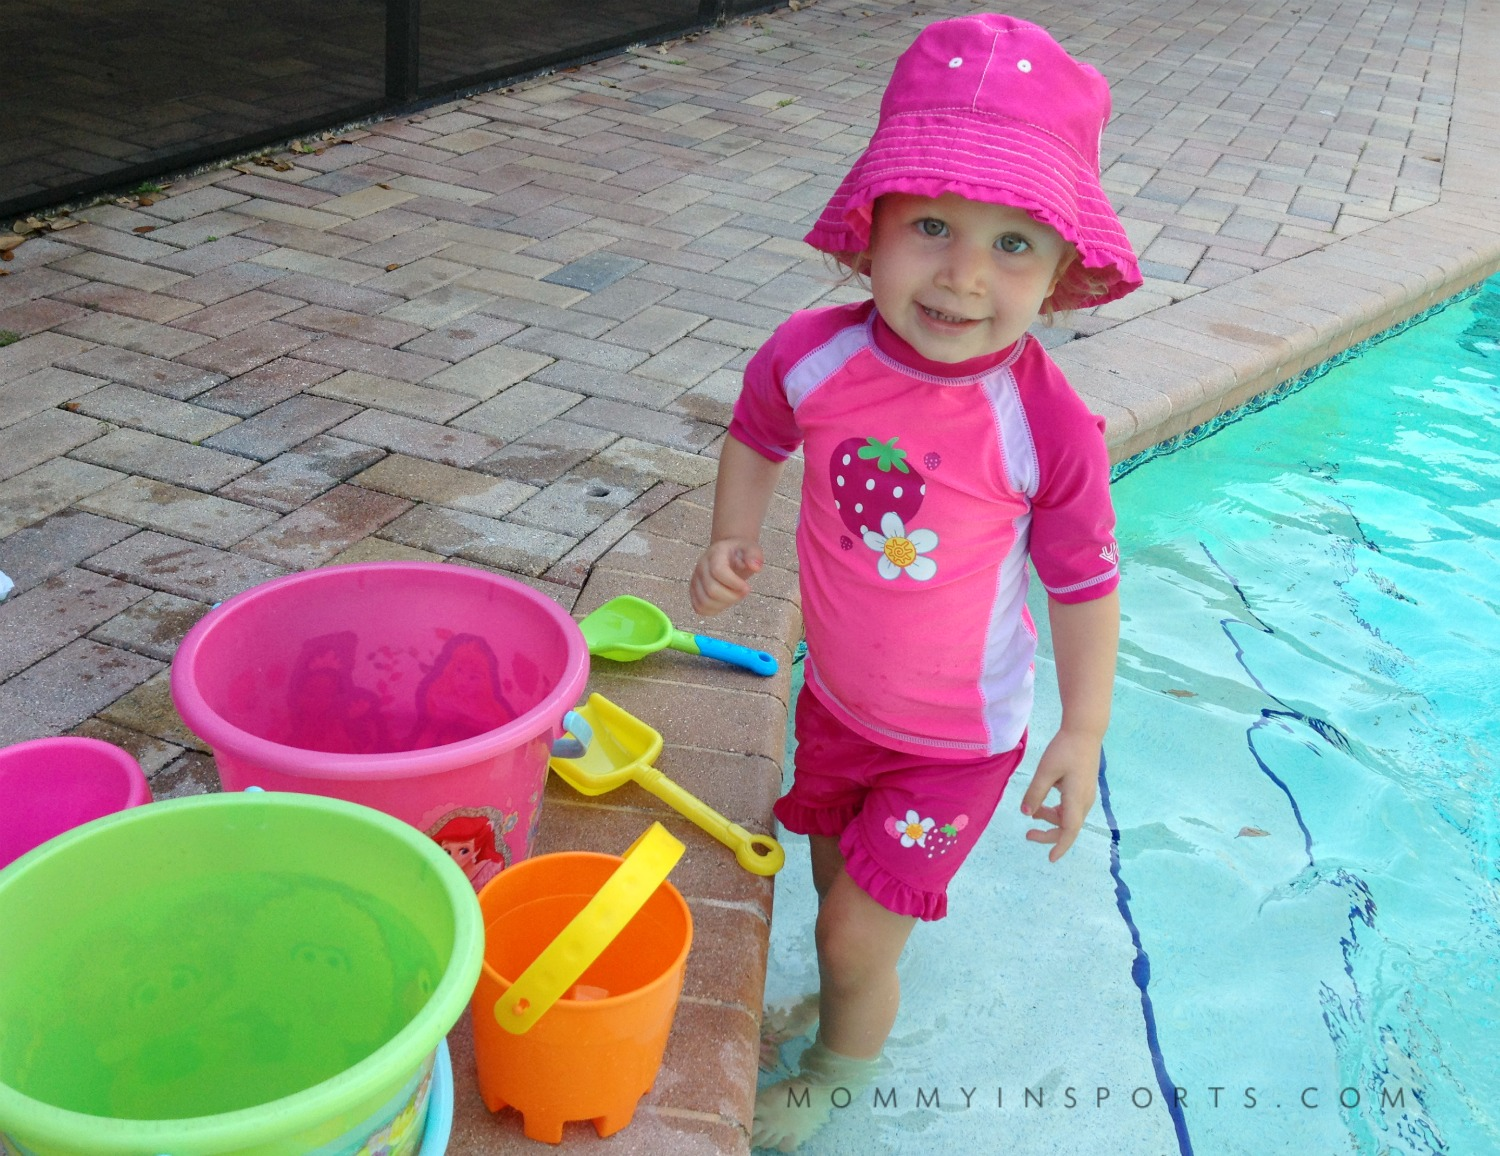 Not sure if your little one needs swim lessons? Drowning is the #1 cause of death of children under the age of 5. And they can learn quickly, don't hesitate, learn to swim easily!